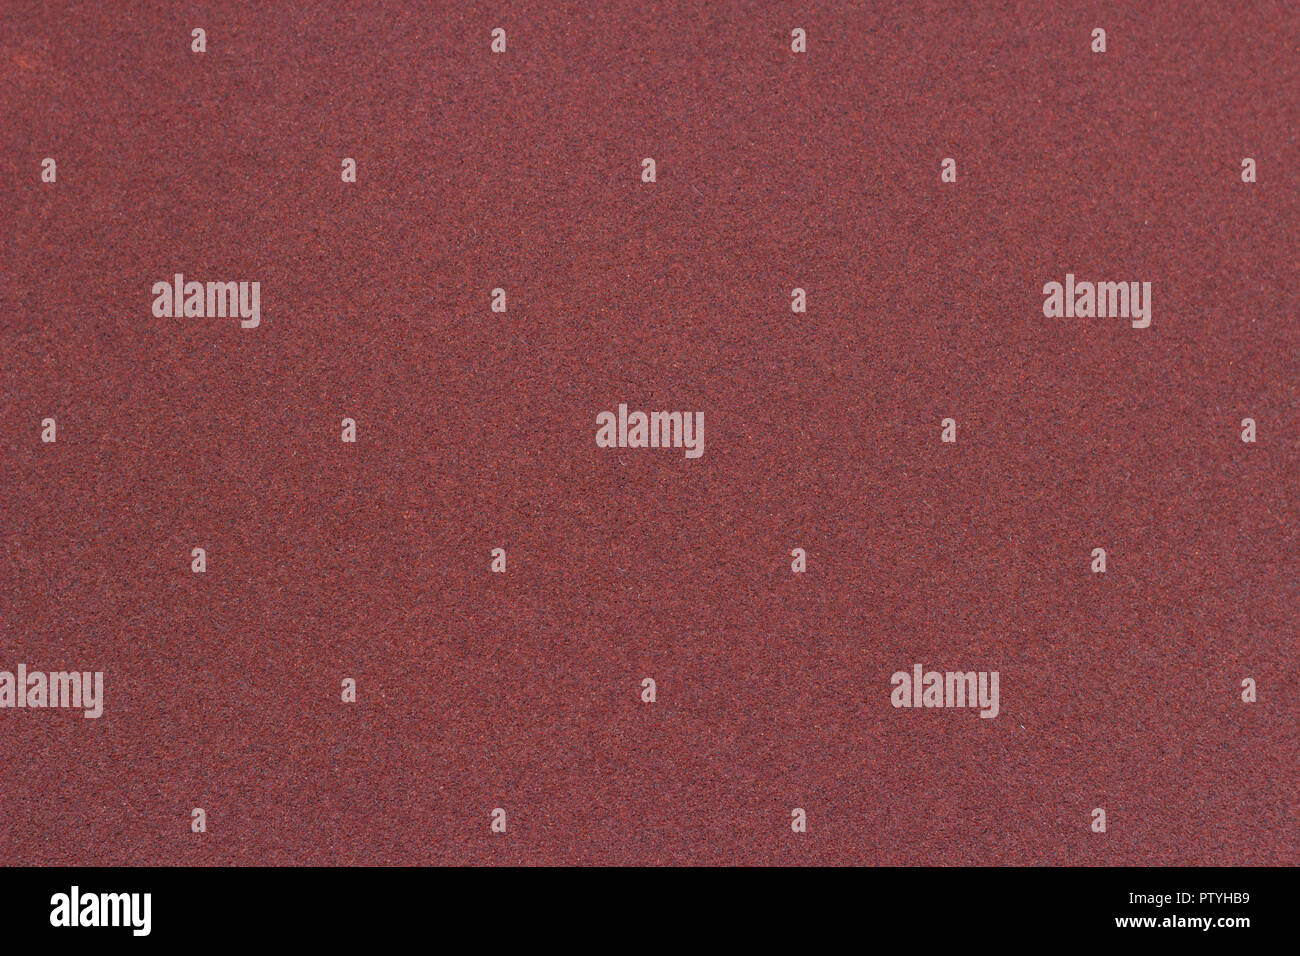 Texture of red sandpaper - Stock Image